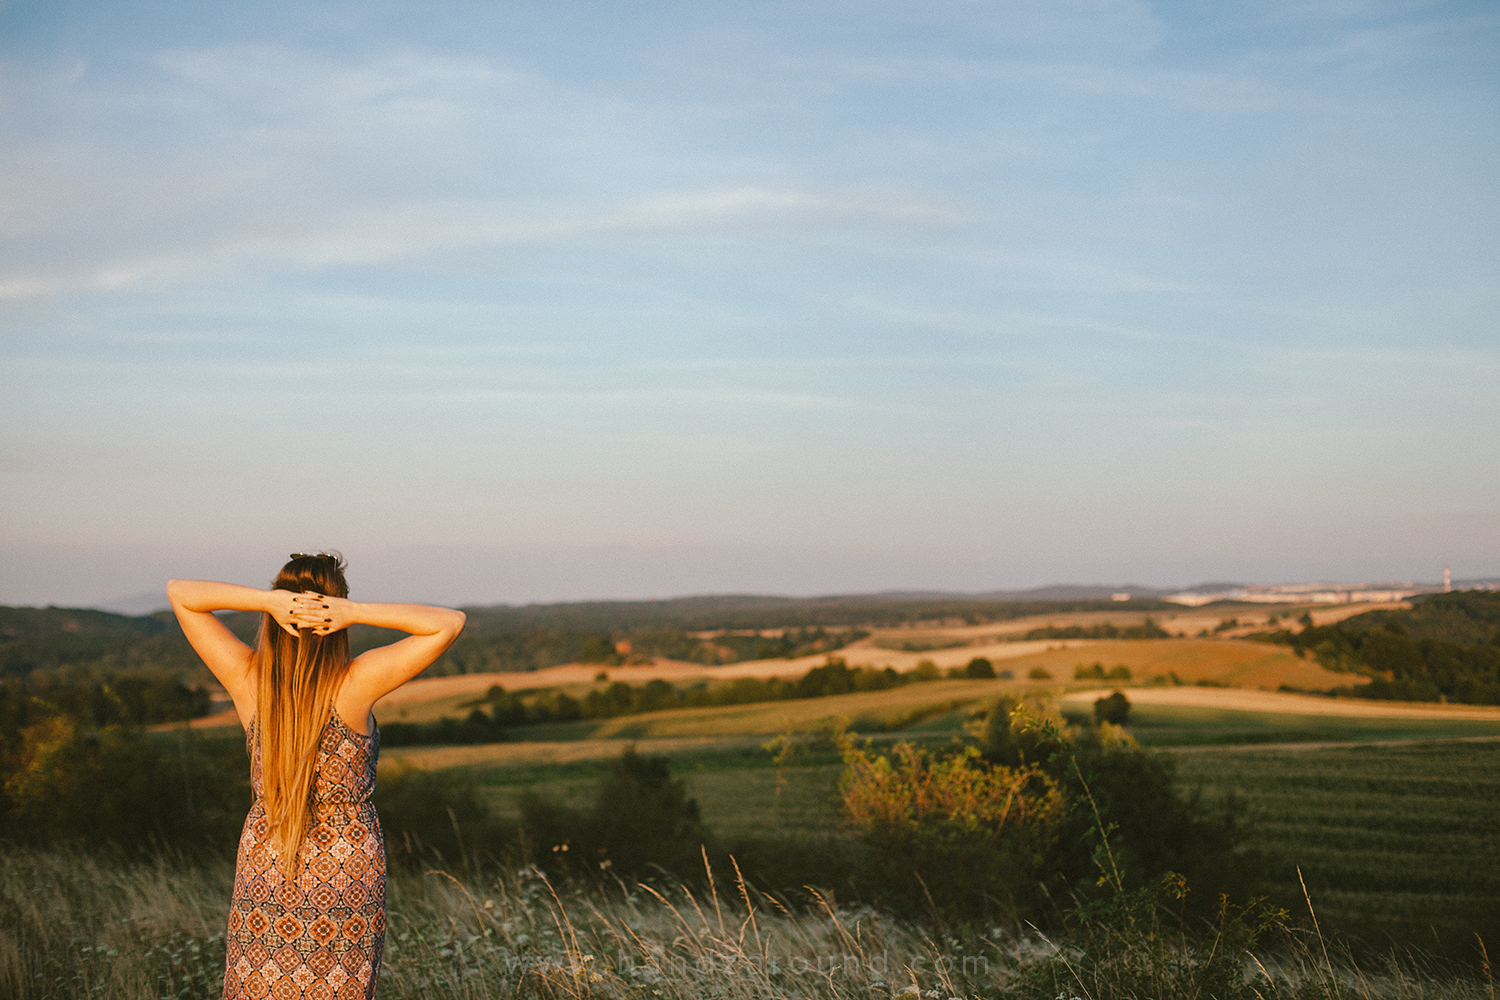 The viewpoint is definitely our favourite spot in Stare Bogaczowice - the sunsets there are unreal!